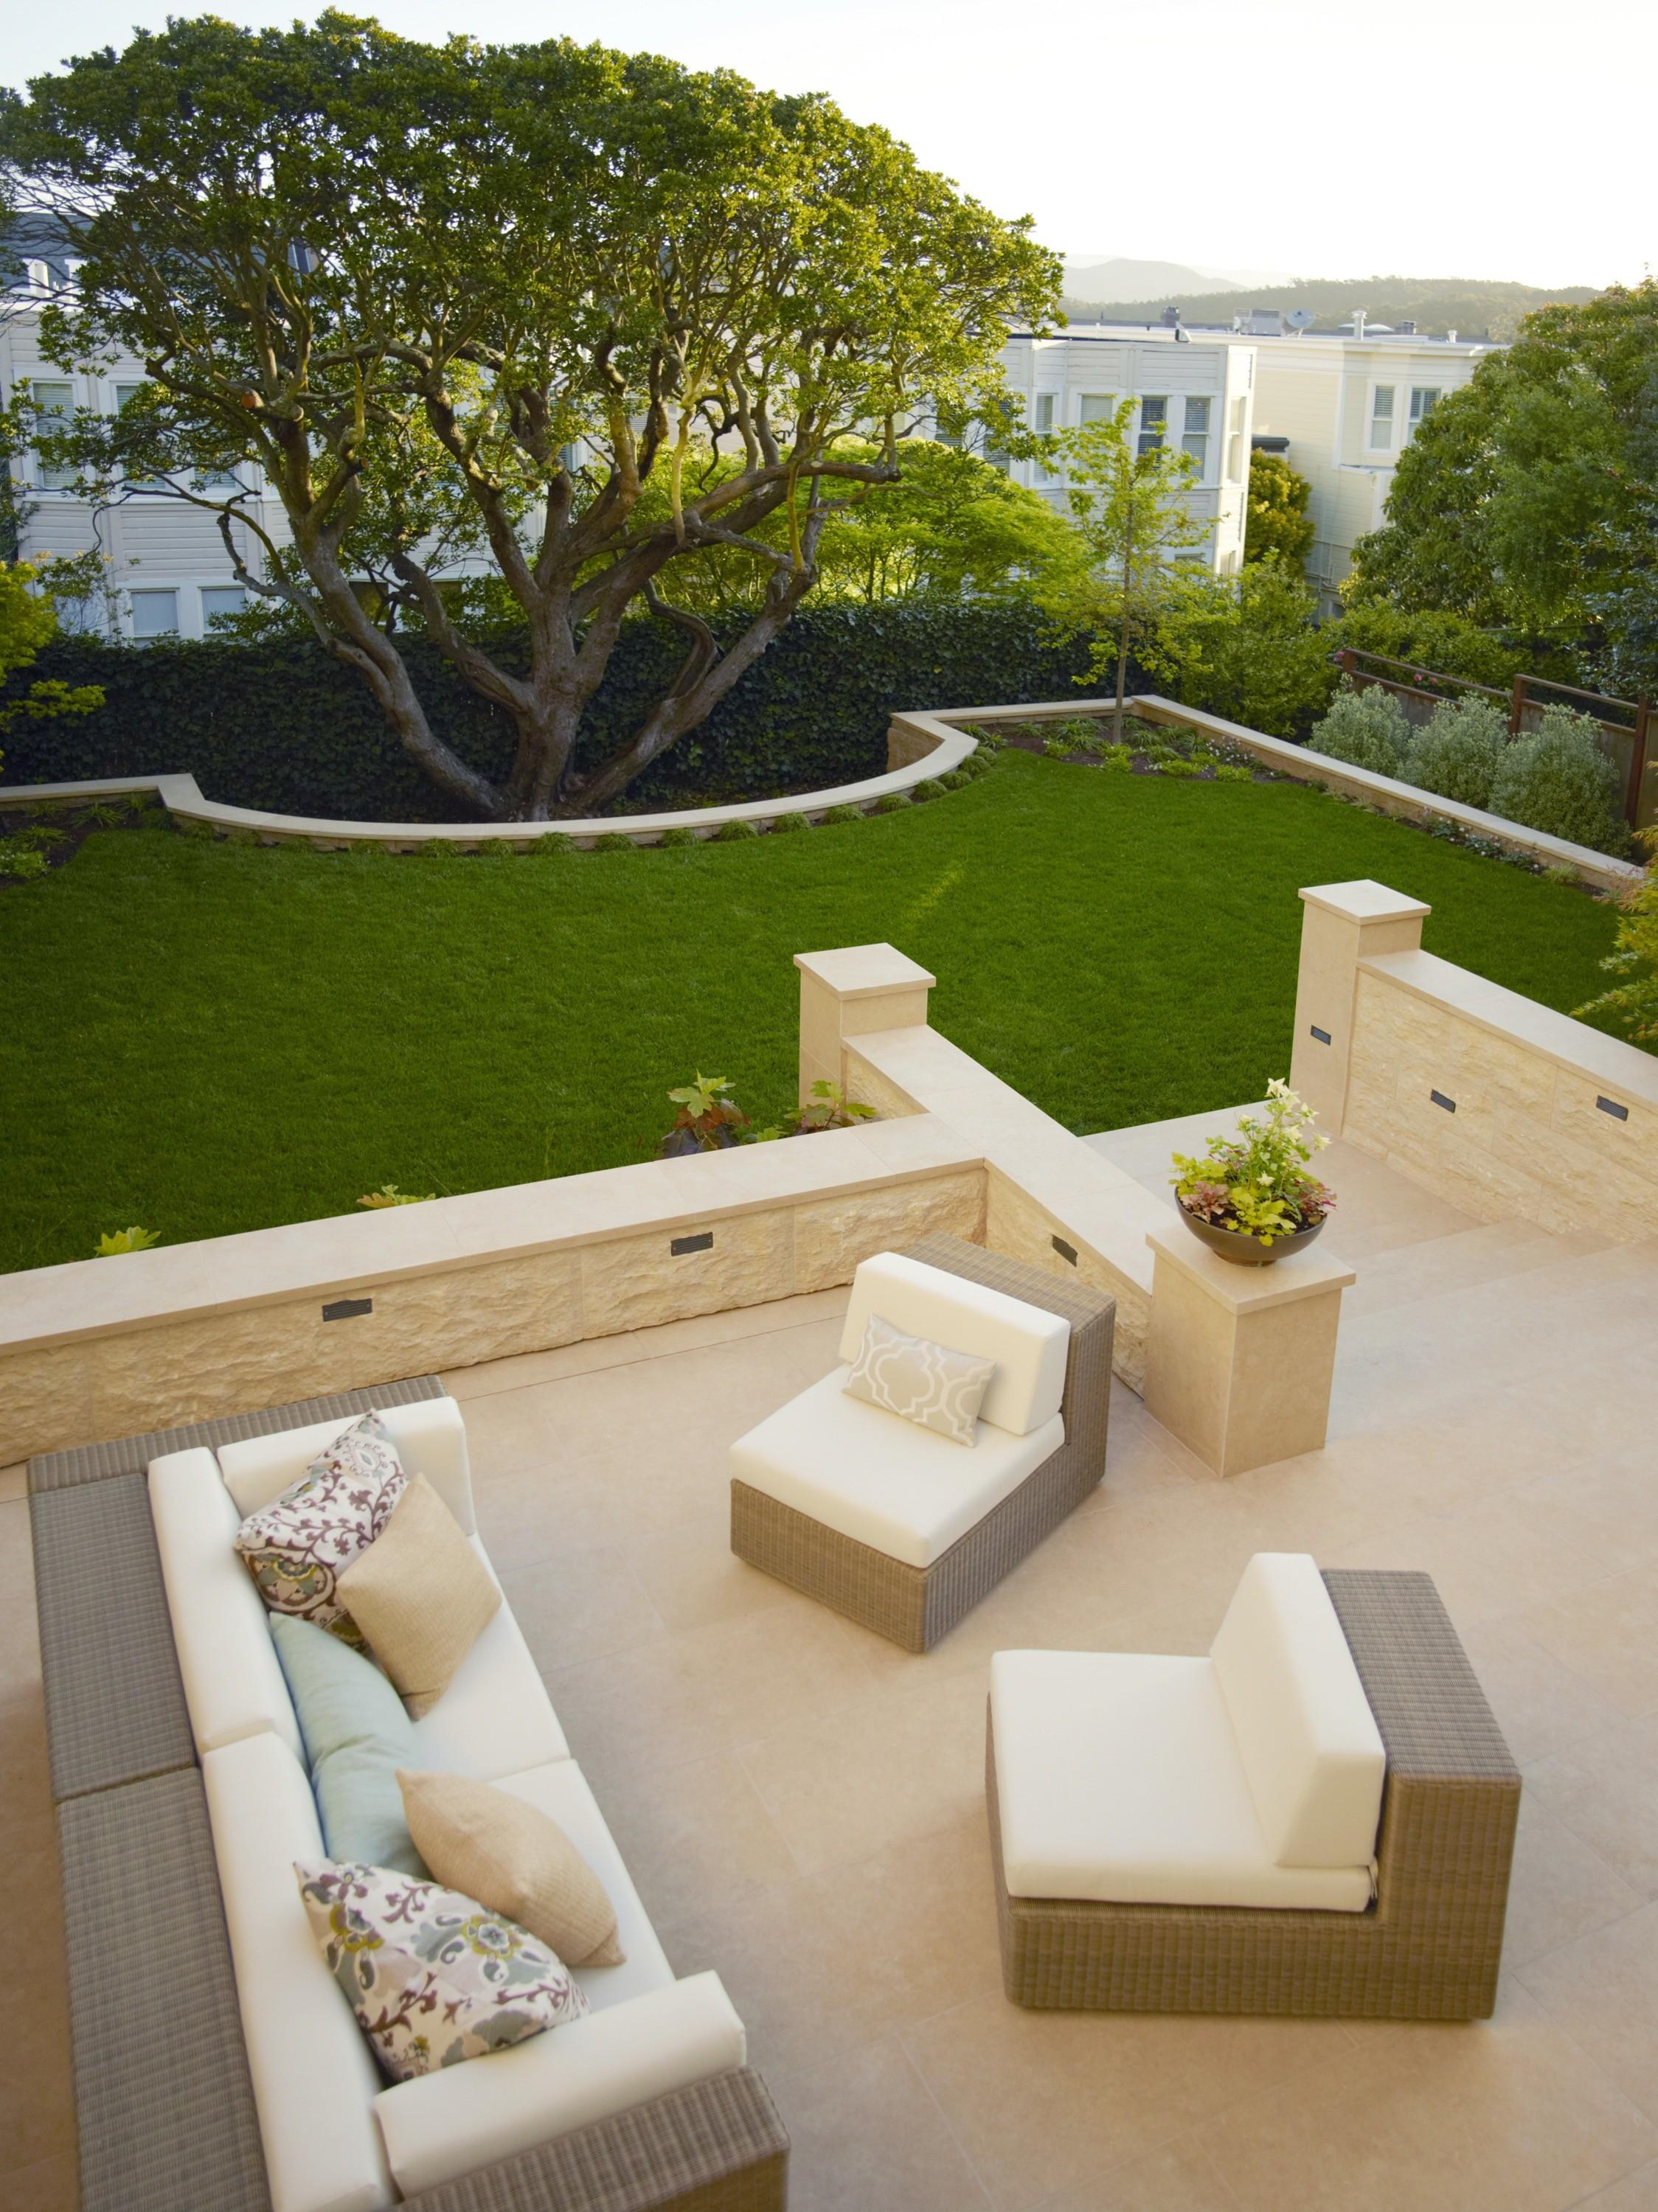 Mesmerizing Minimalist Garden Ideas Design Decoration